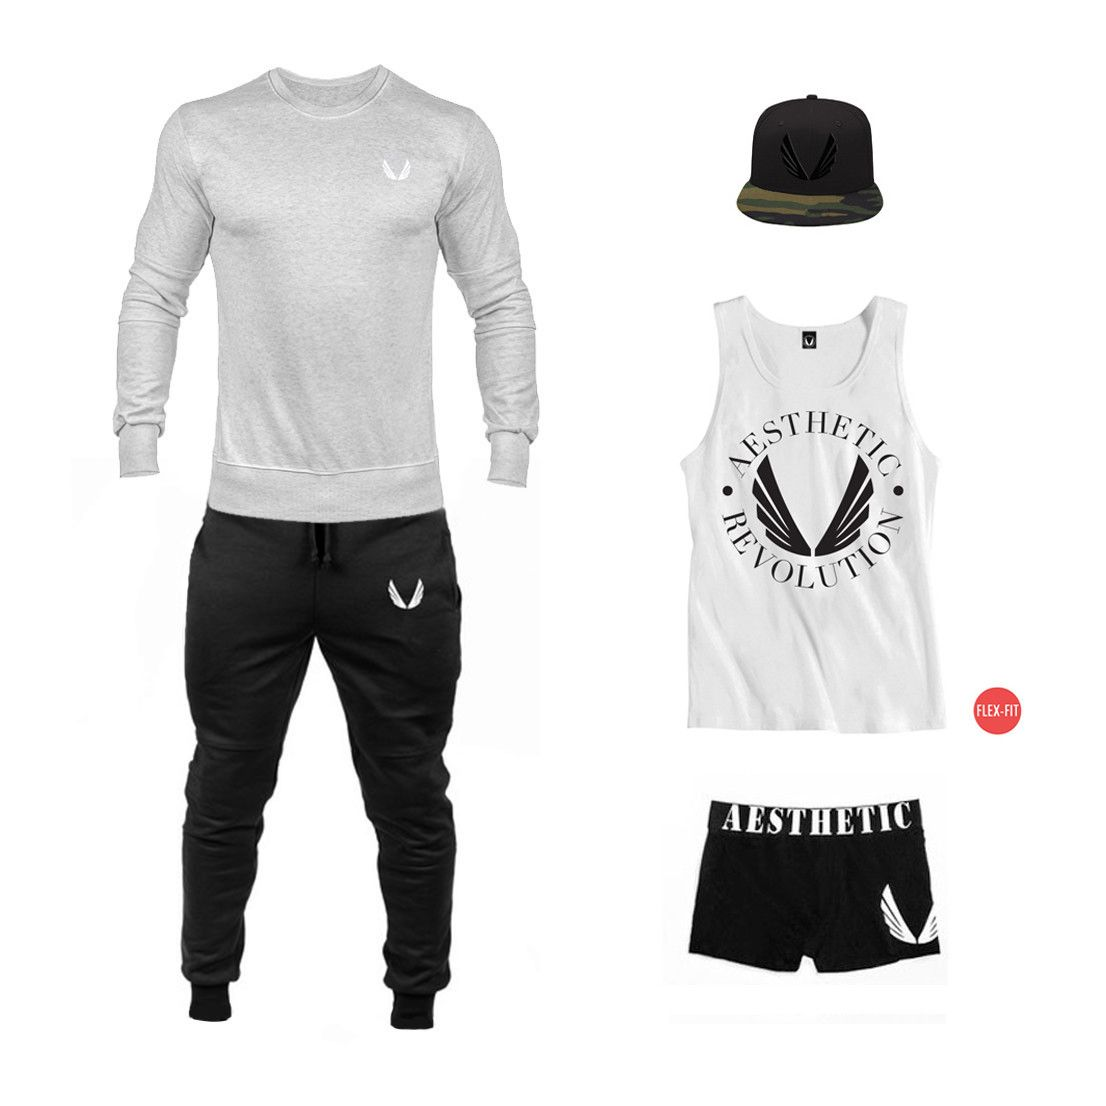 Black Cuffed Joggers - Grey Fitted Crew Neck - Black/Camo SnapBack - White Wings Logo u0026quot;FlexFit ...